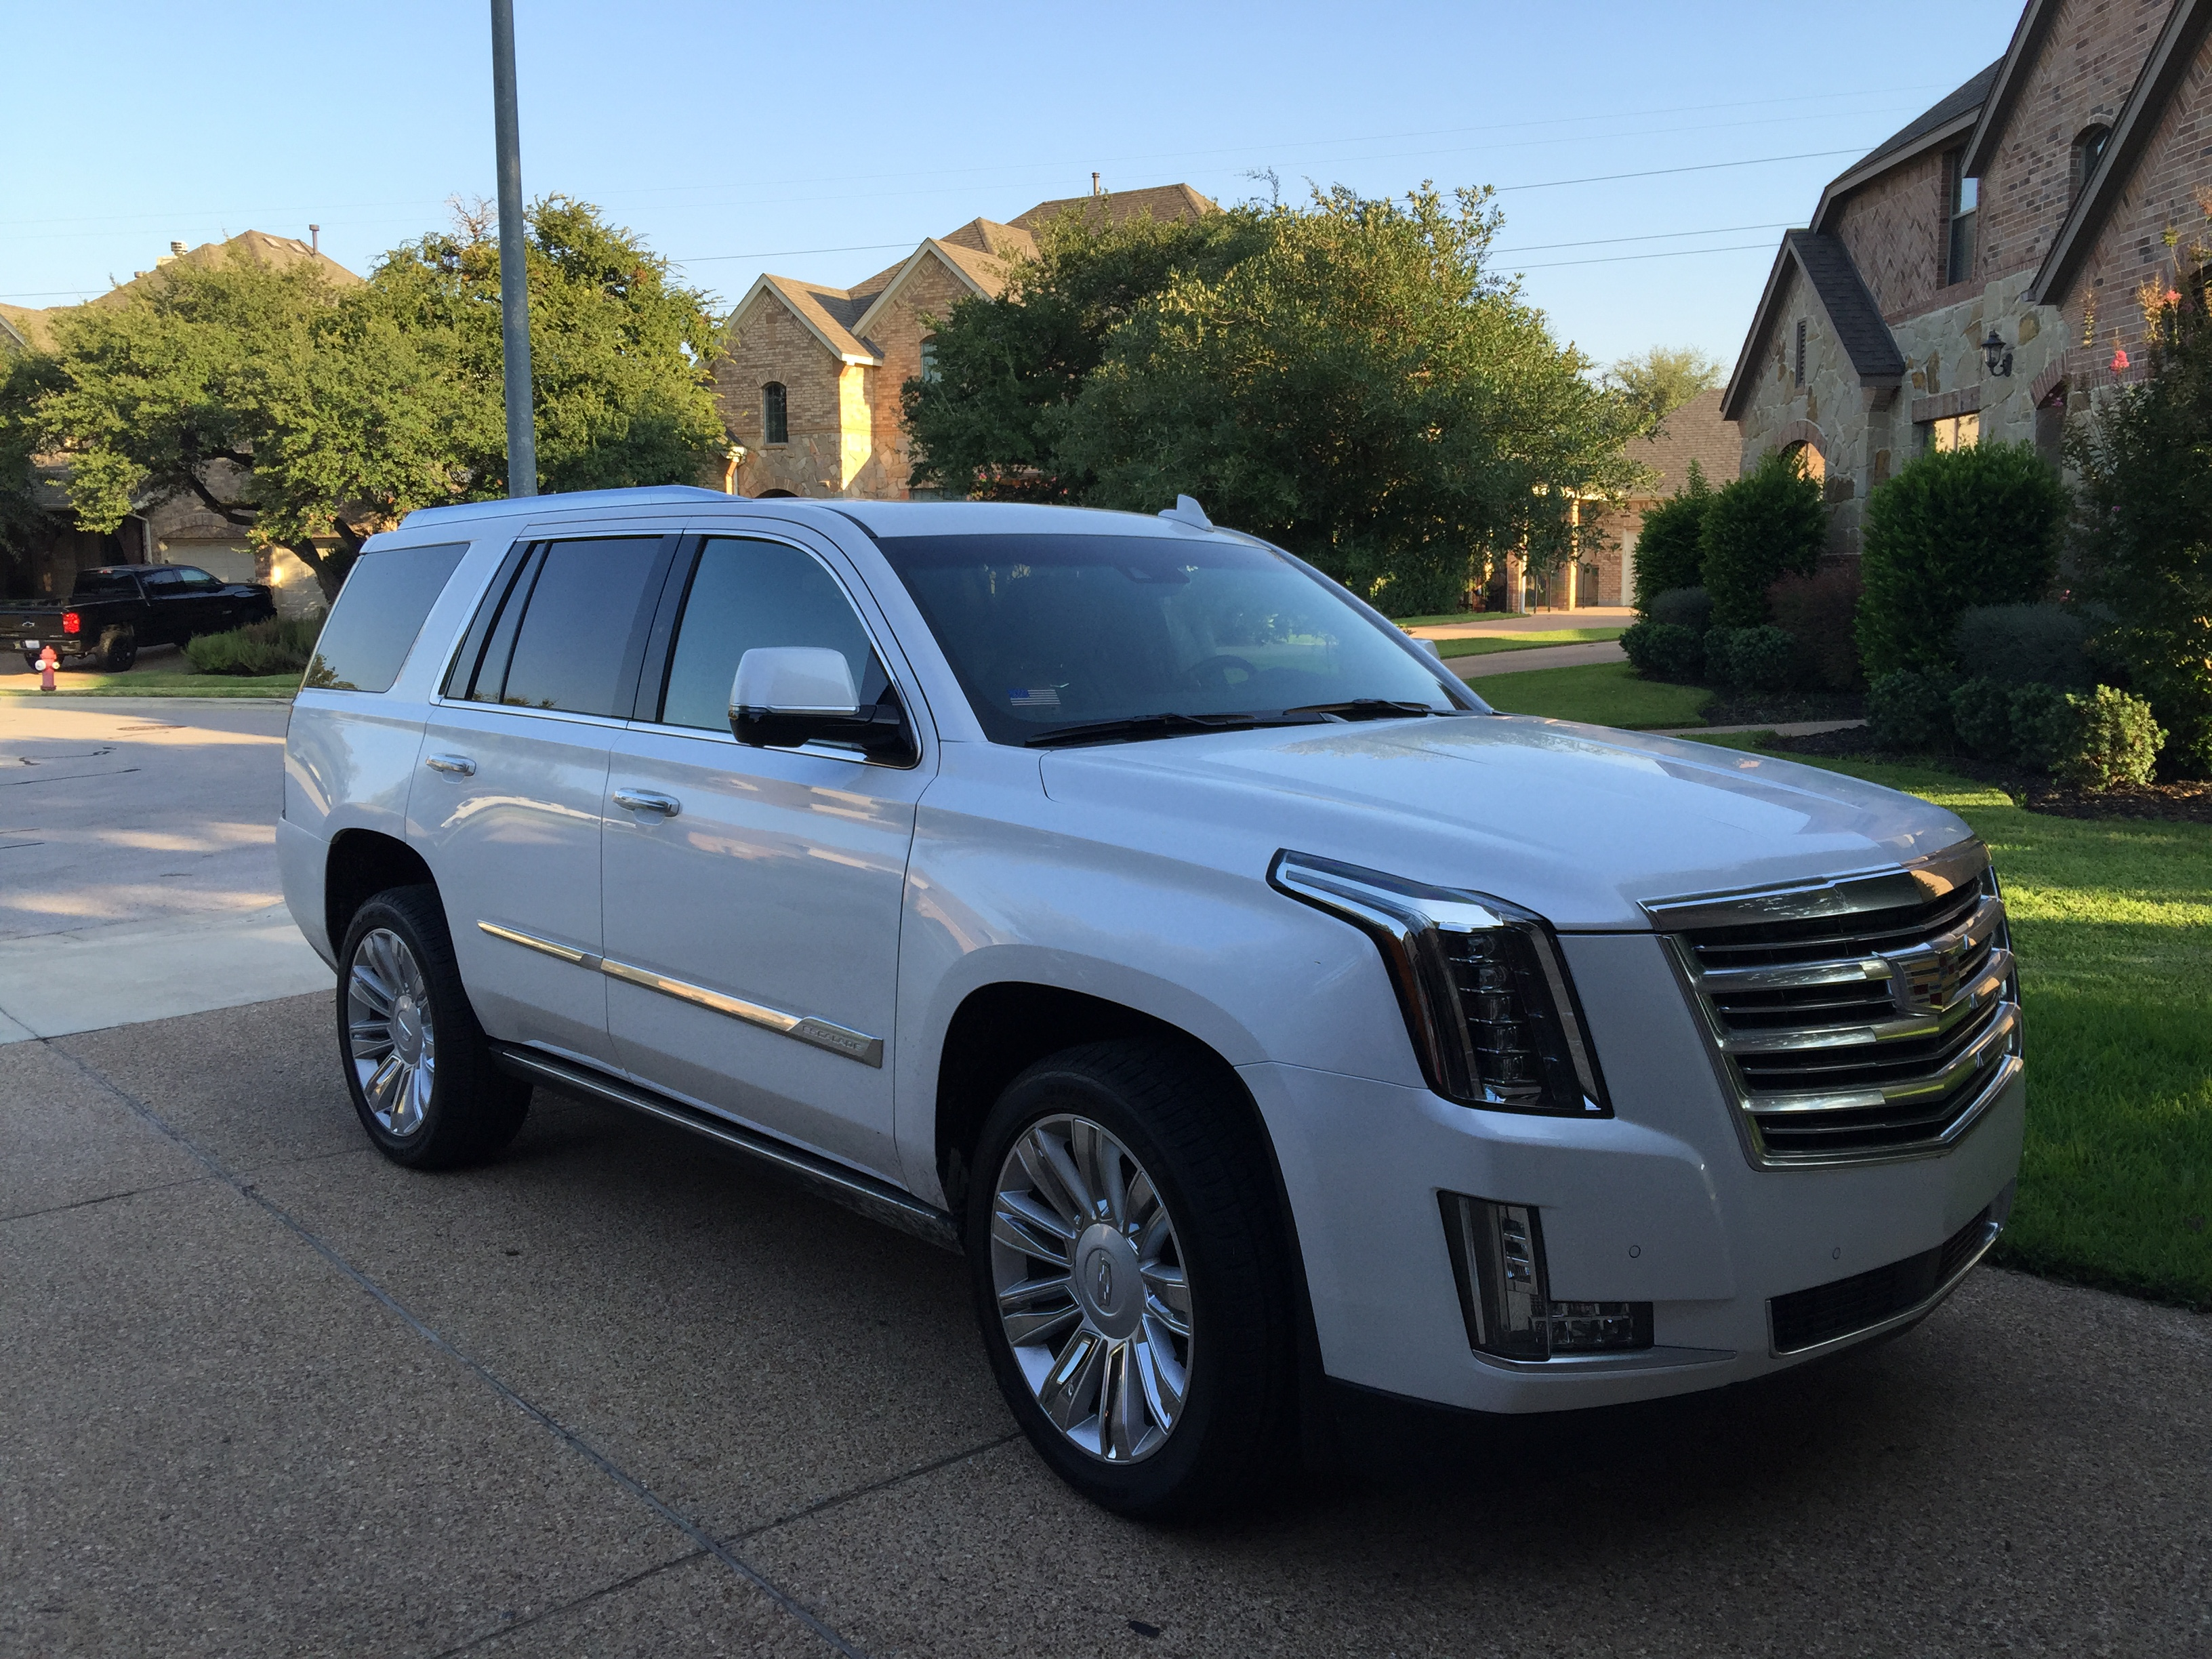 htm used sc collection greenville south escalade esv in suv cadillac sale premium carolina for